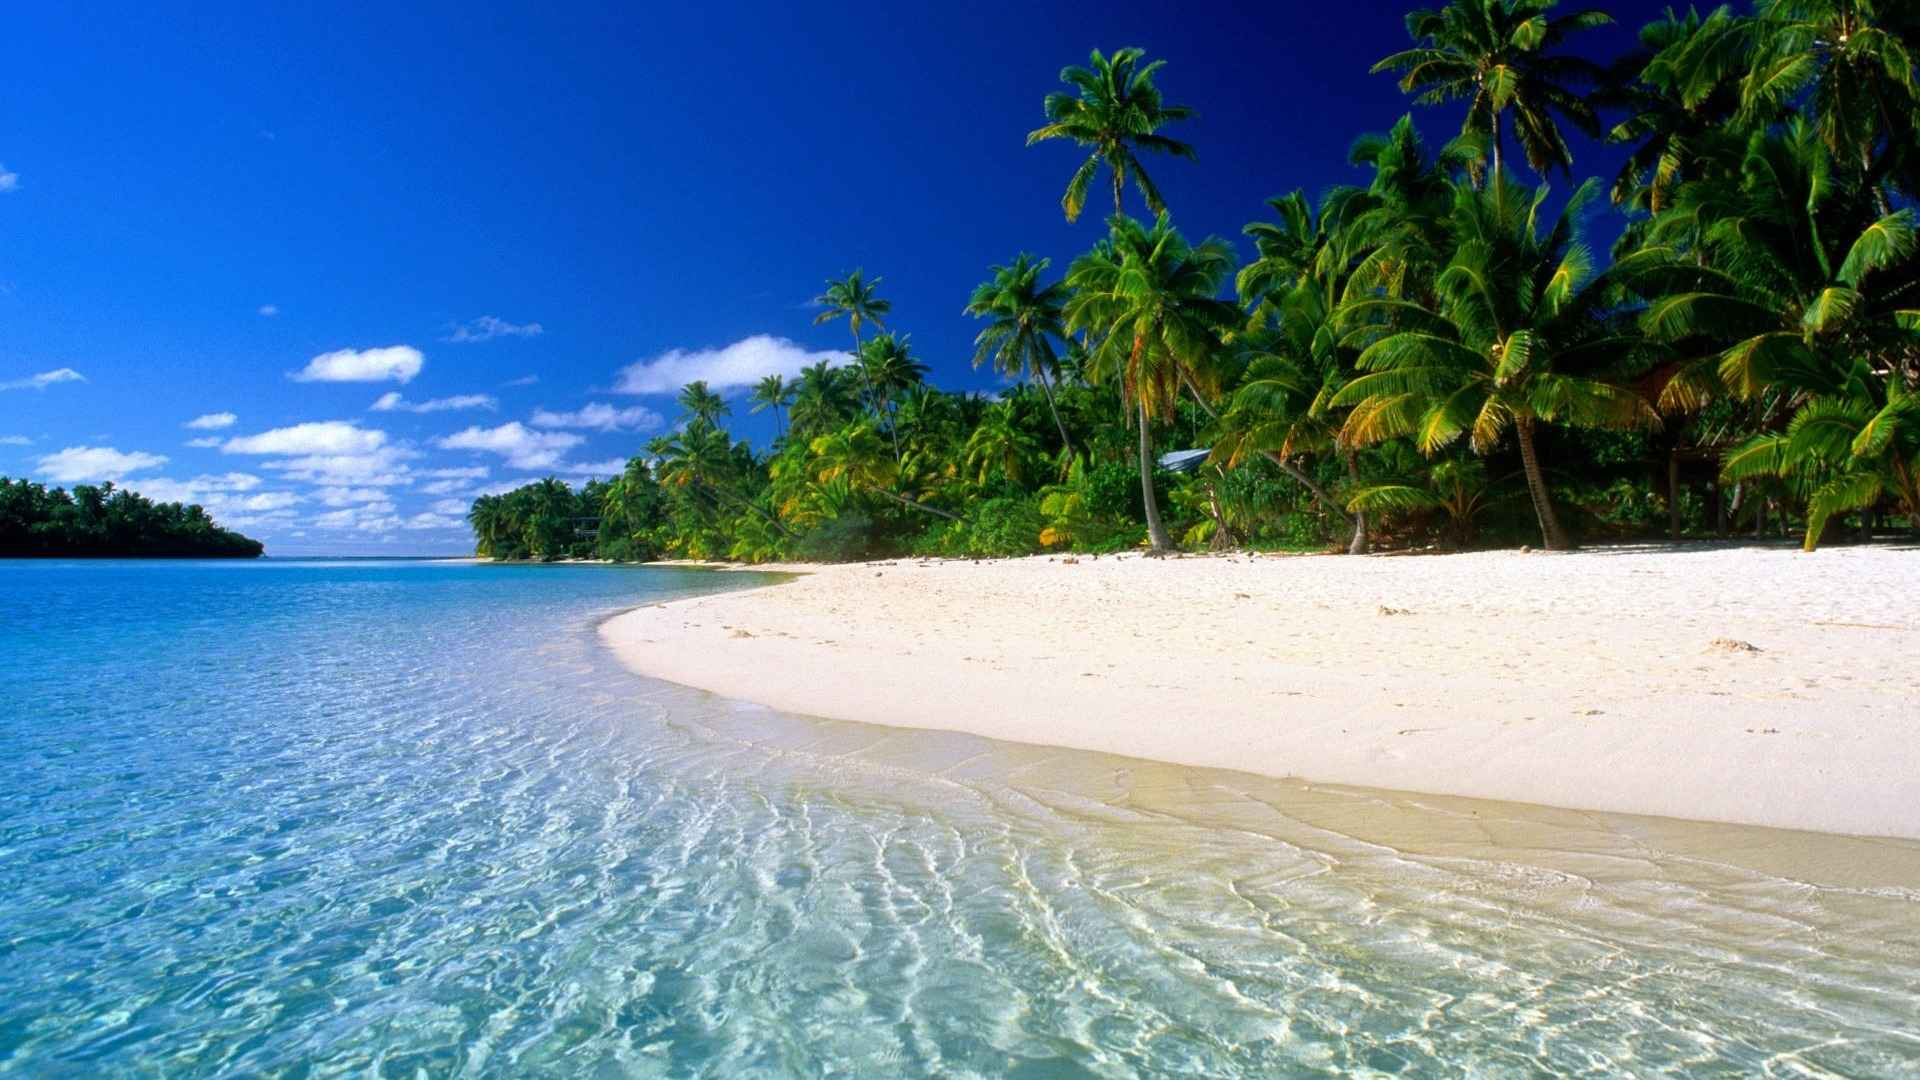 Beach Wallpaper 039